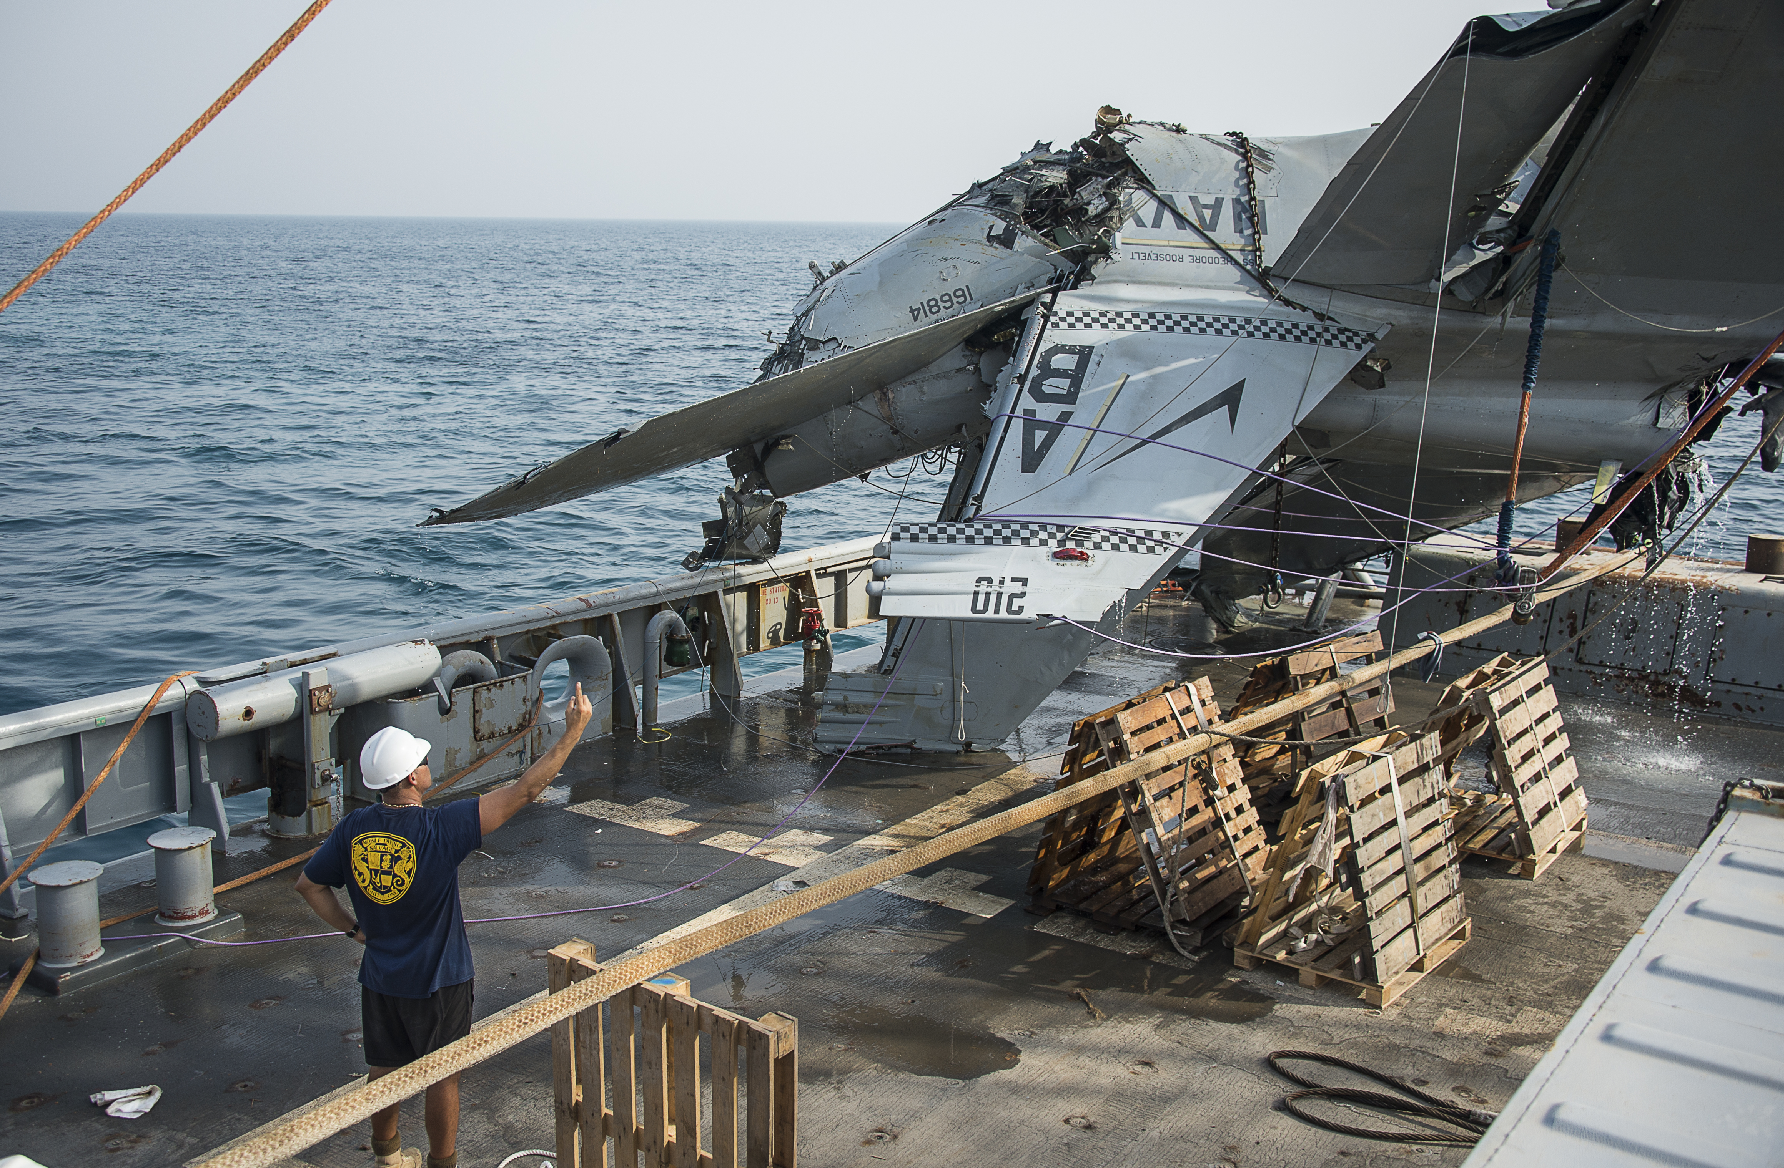 The Aviationist Engine Failure F18 Jet Diagram Heres Why Us Navy Recovered This F A 18f Super Hornet Wreckage From Sea